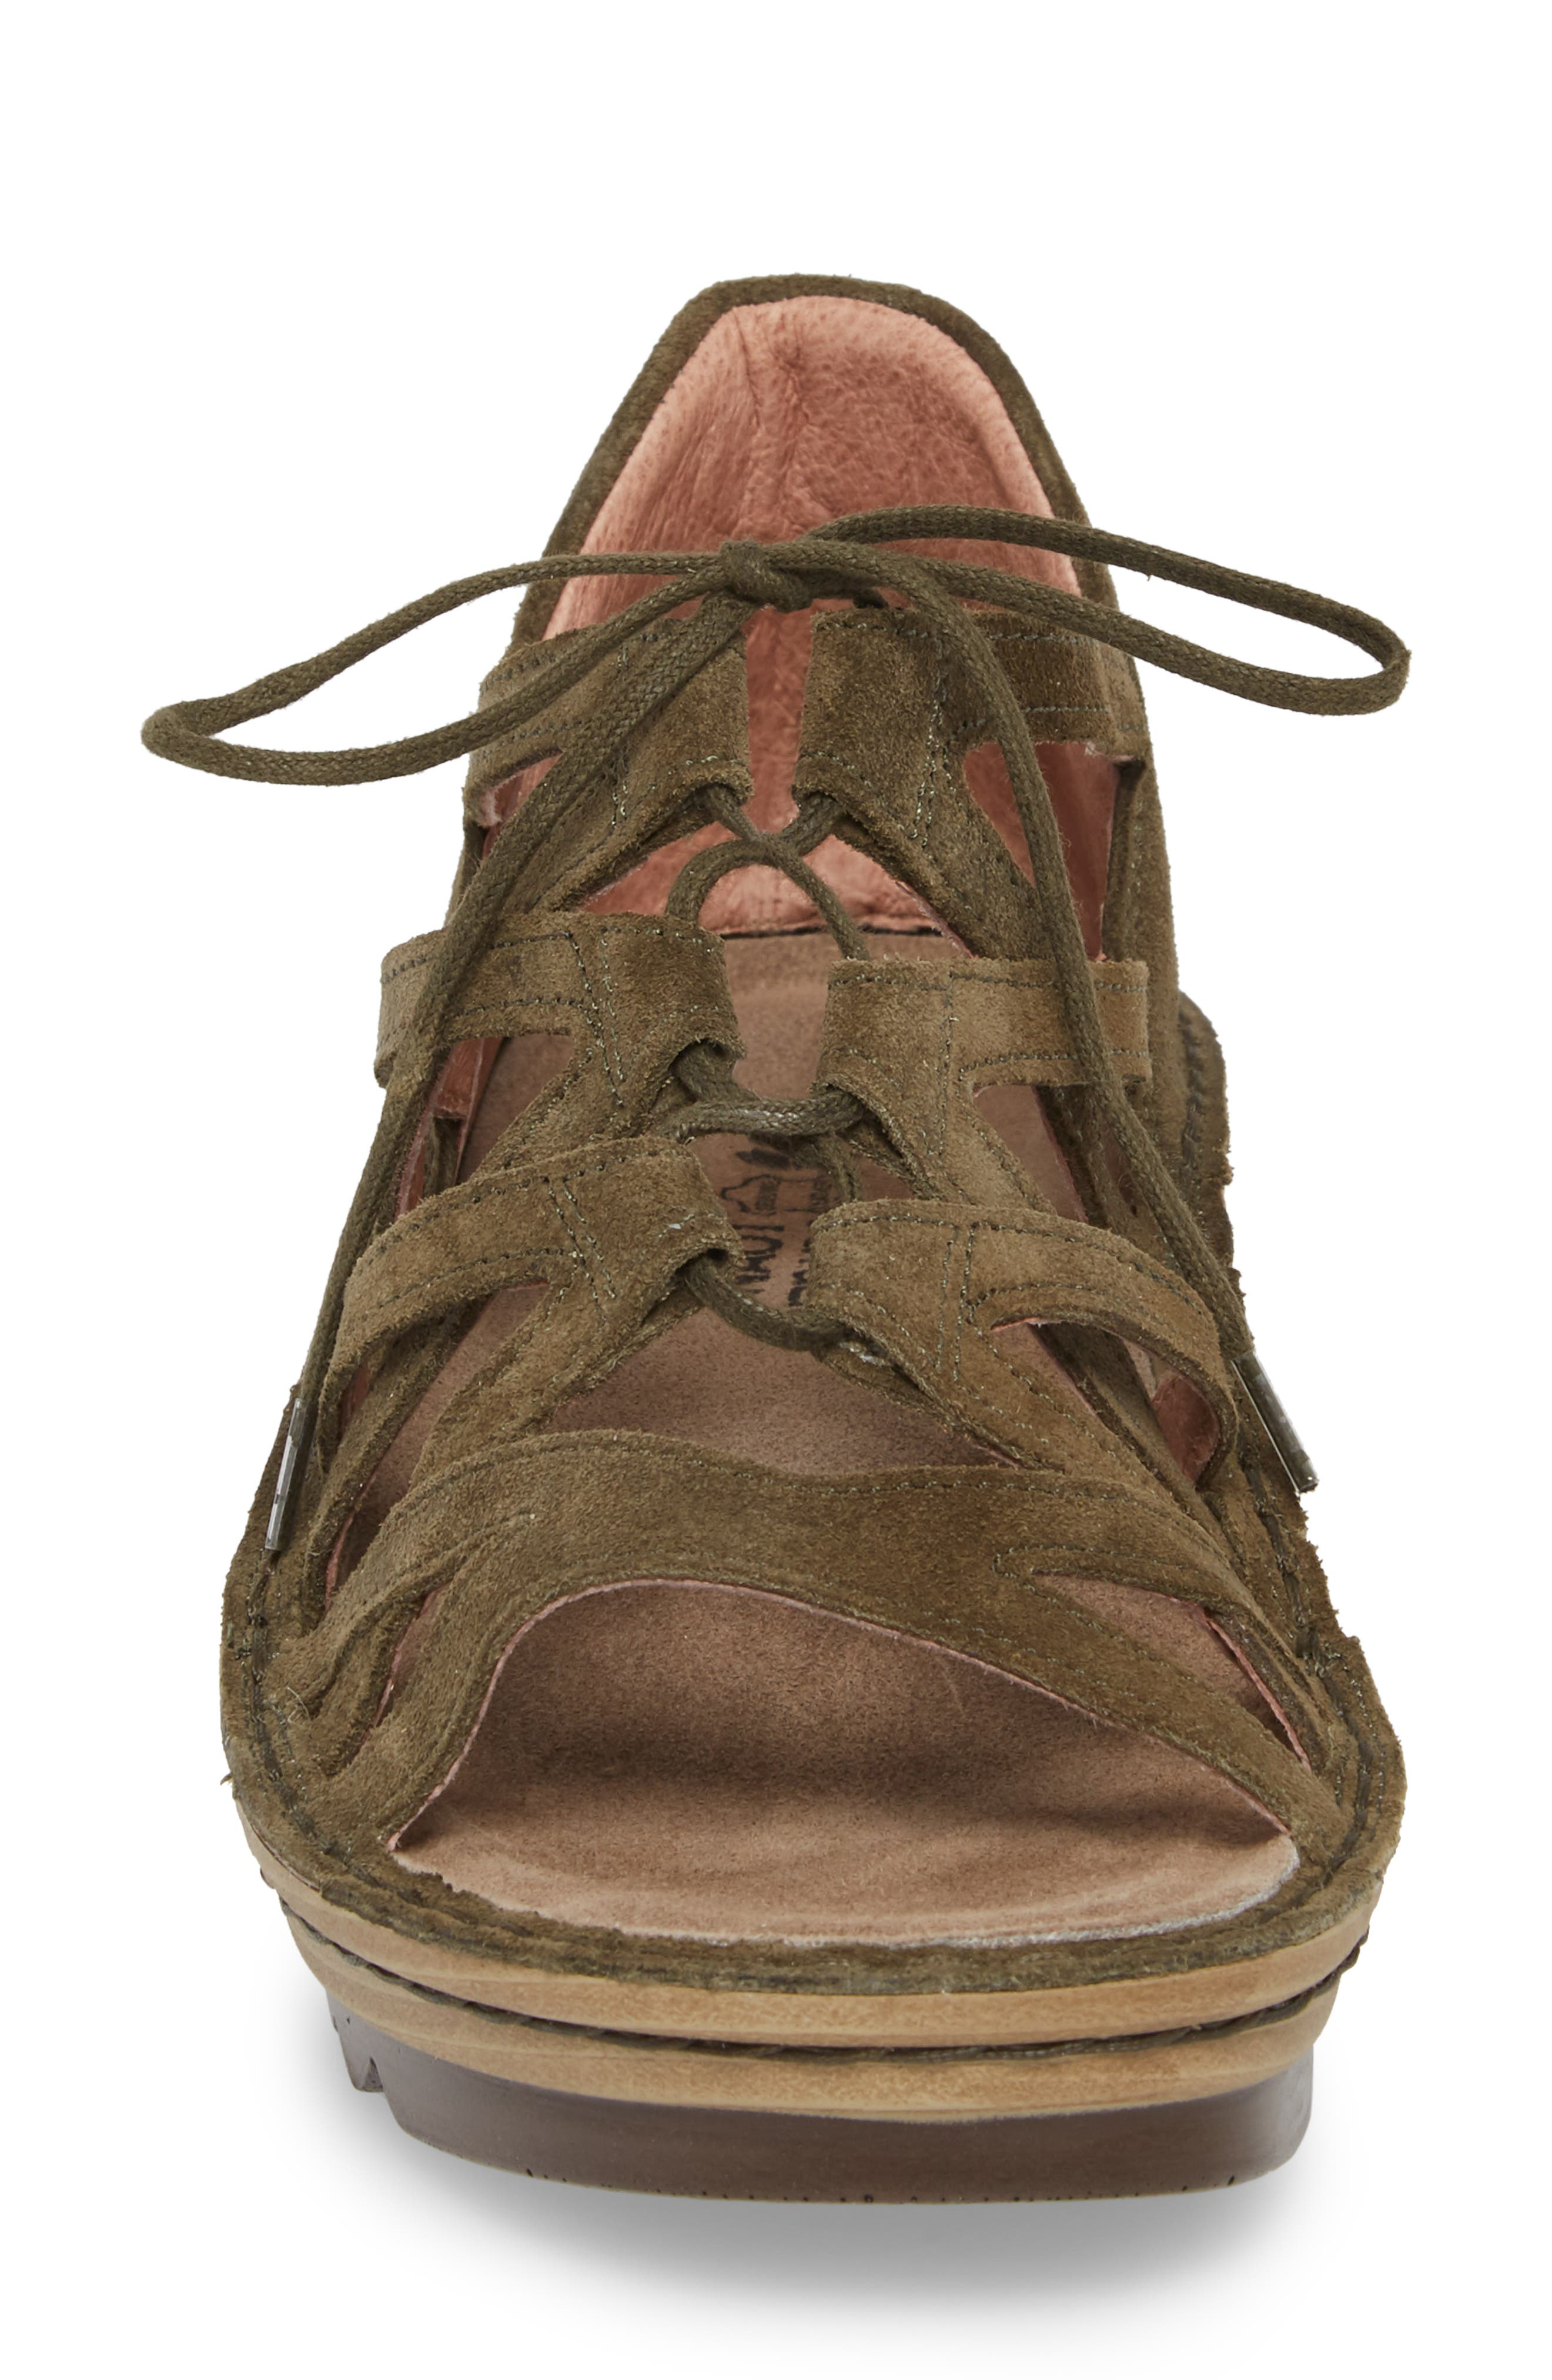 Yarrow Sandal,                             Alternate thumbnail 4, color,                             Oily Olive Suede